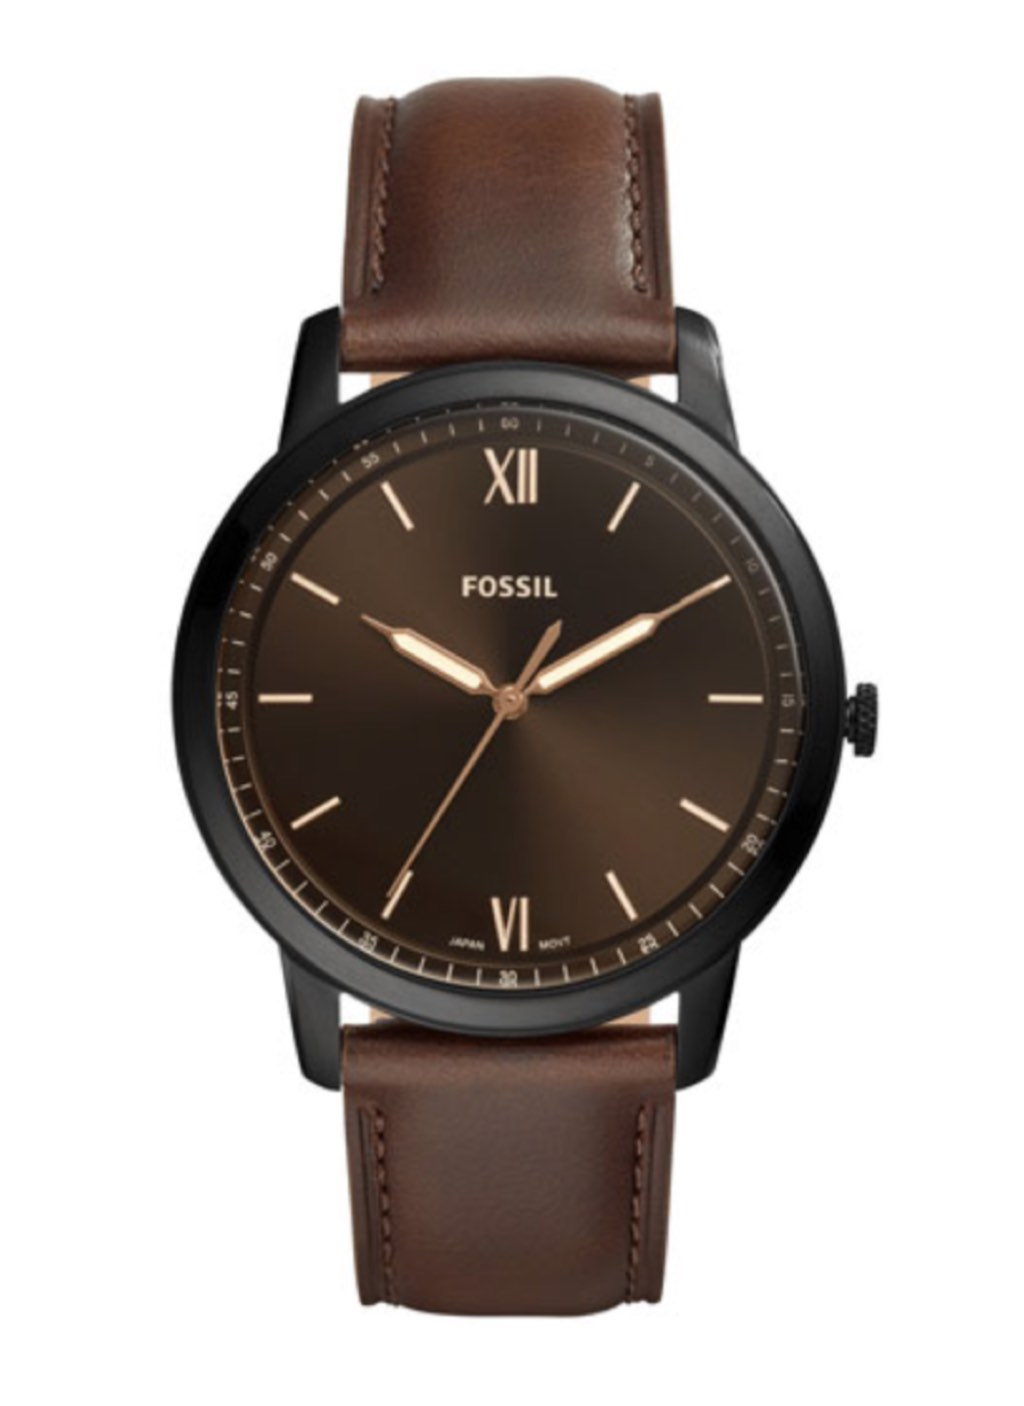 Watches make great gifts for men